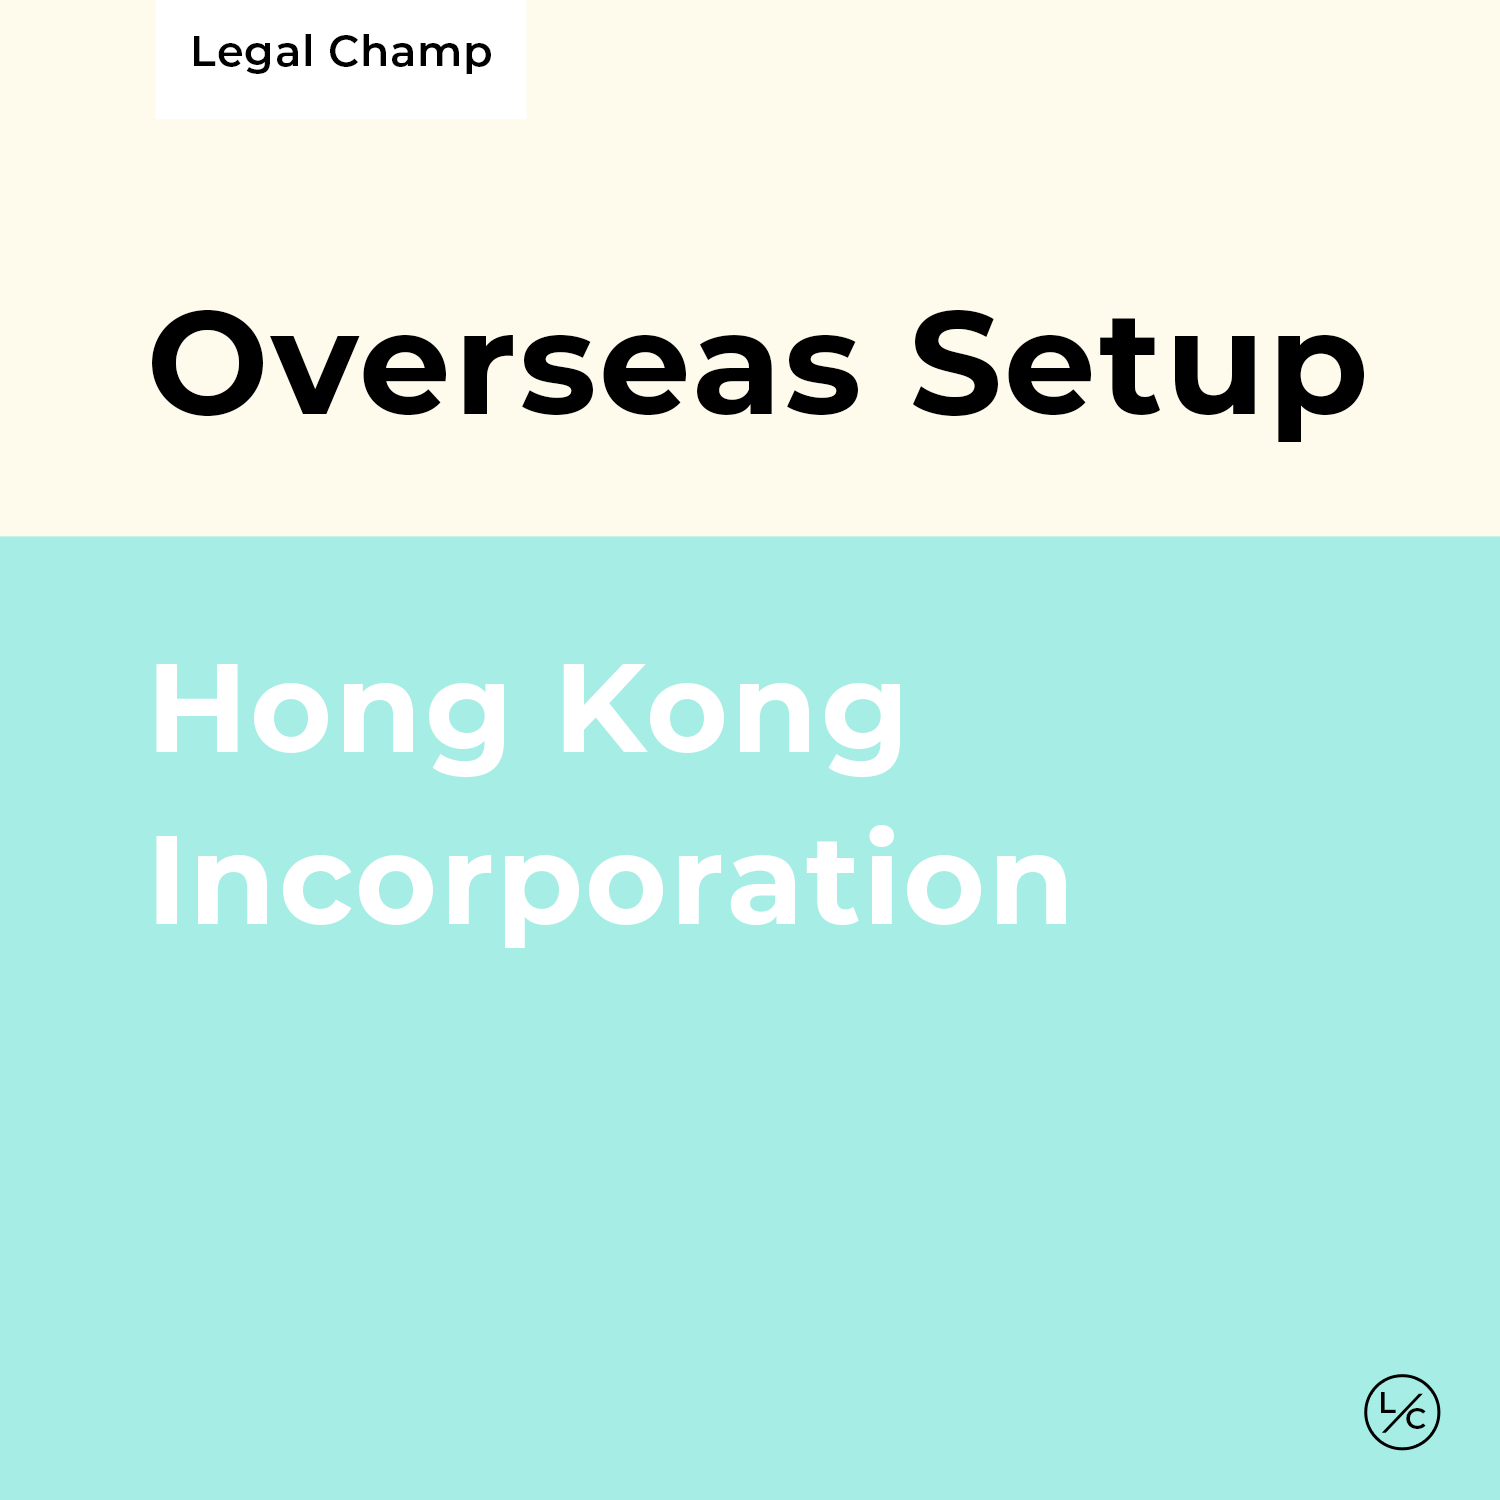 Hong Kong Incorporation